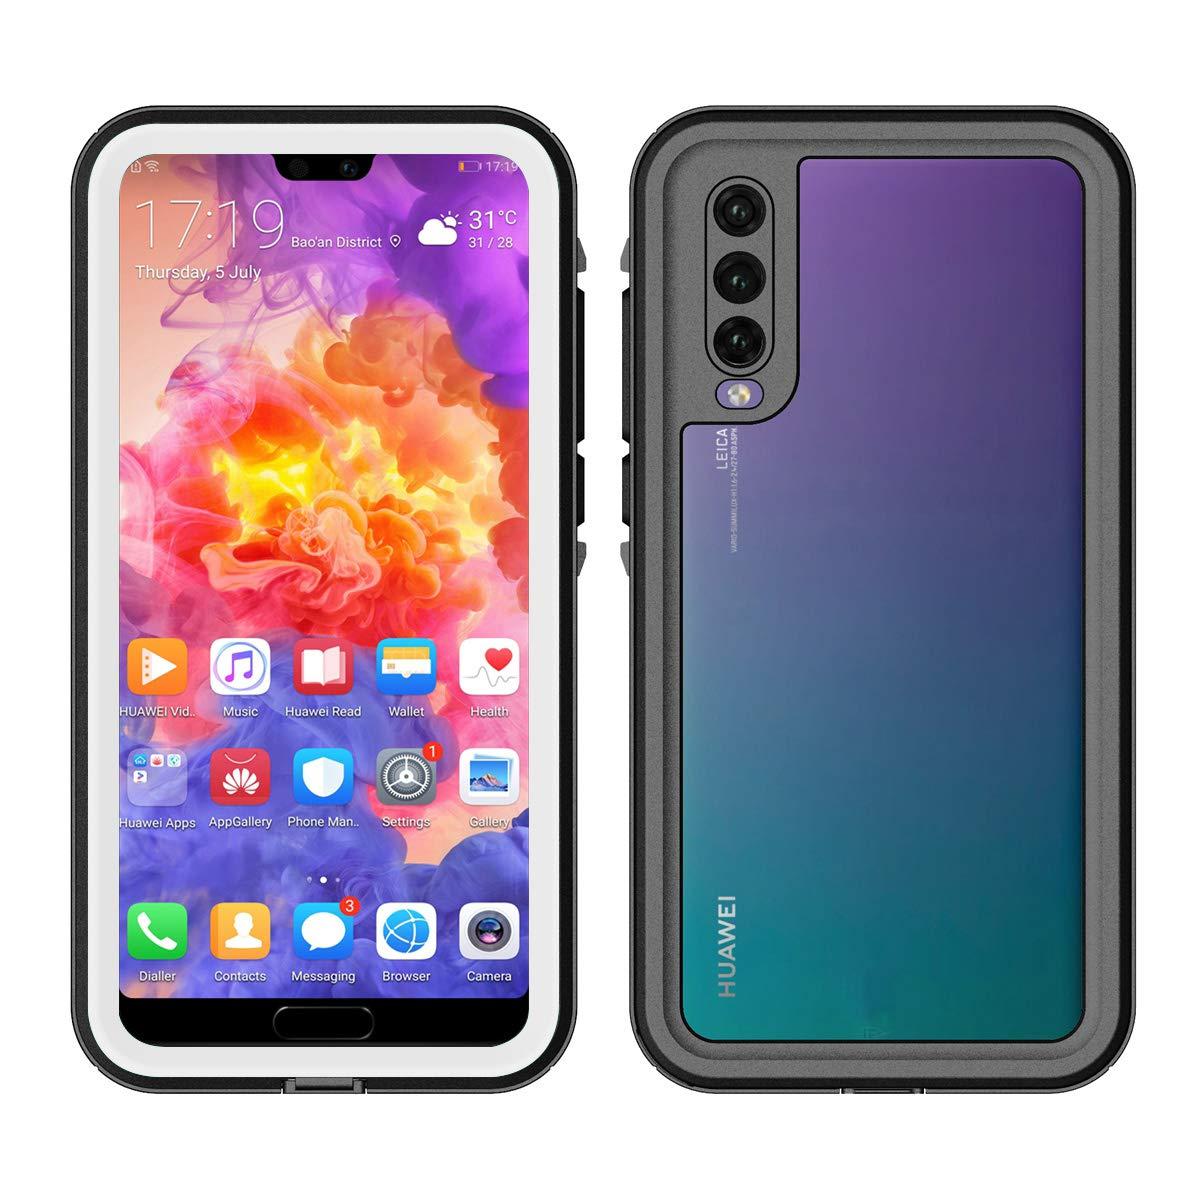 Huawei P20 Pro Waterproof Case, Fusutonus [IP68 Certified] Underwater Full Sealed Cover, Full Body Protective Shockproof Snowproof for Huawei P20 Pro - Black 2G10-59-116